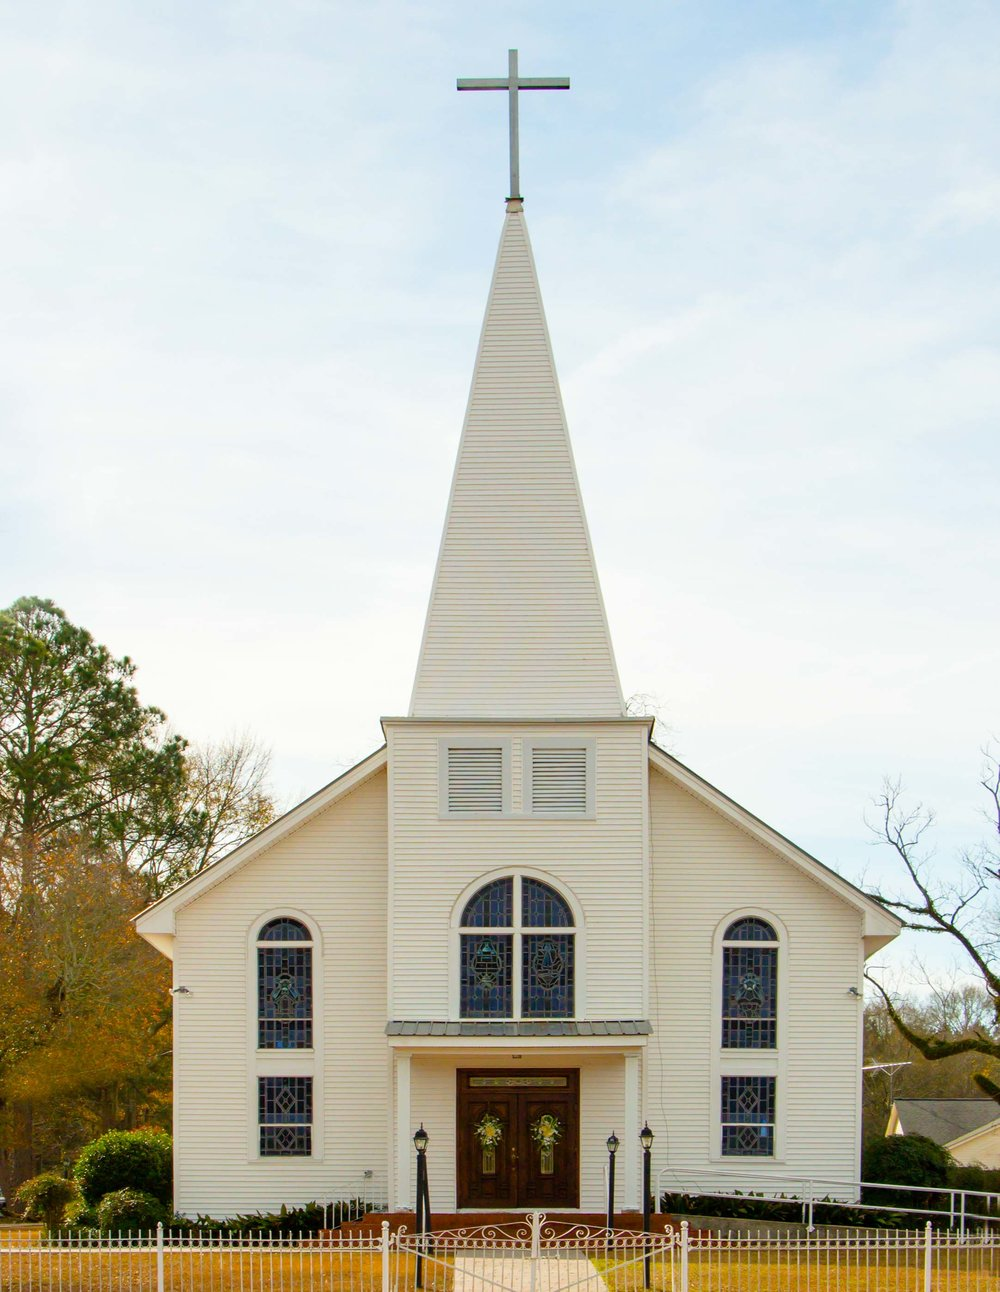 The beautiful St. Peter's Catholic Church, located on Highway 42 in Bassfield, Mississippi.